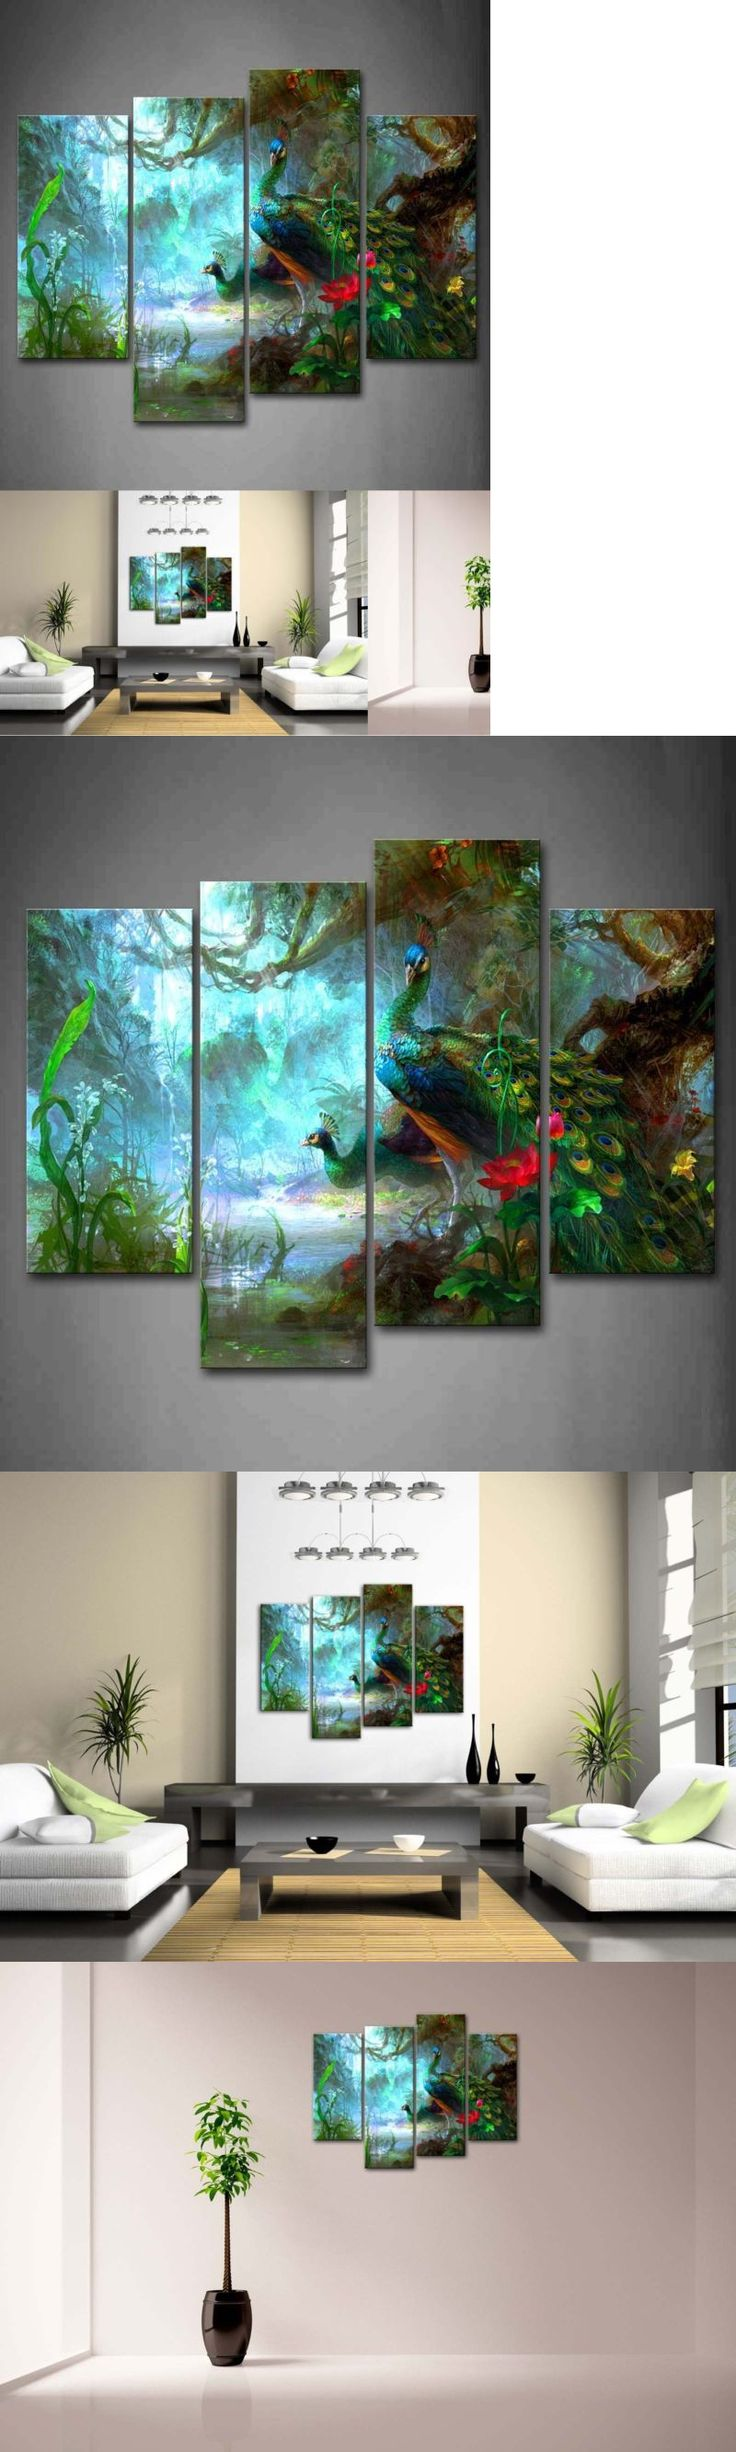 Posters and Prints 41511: Peacock Wall Art Painting Picture Print Canvas Bird Animal Photo Home Decor Gift -> BUY IT NOW ONLY: $67.11 on eBay!